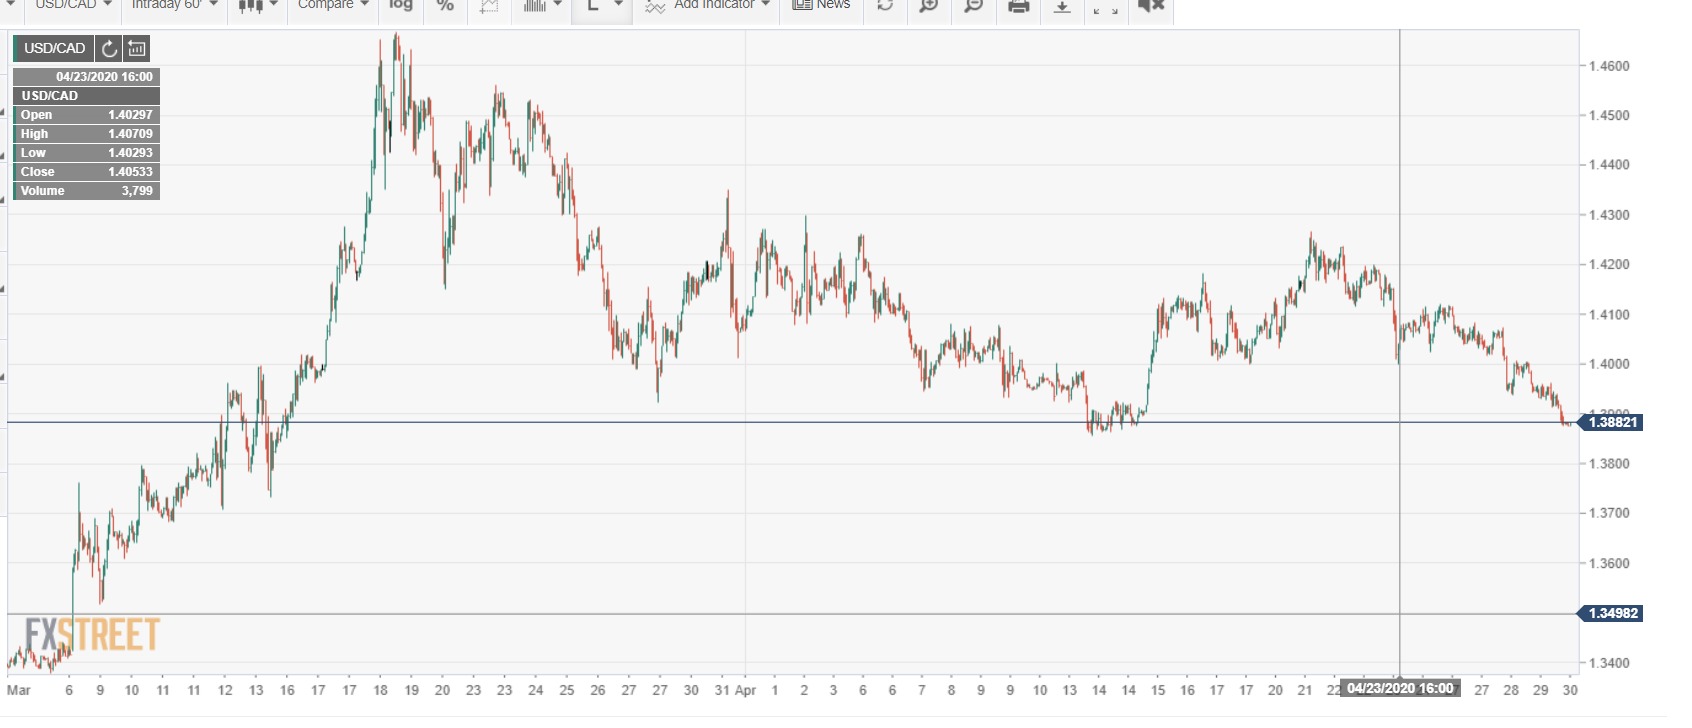 FXStreet USDCAD Daily Chart - 30 April 2020